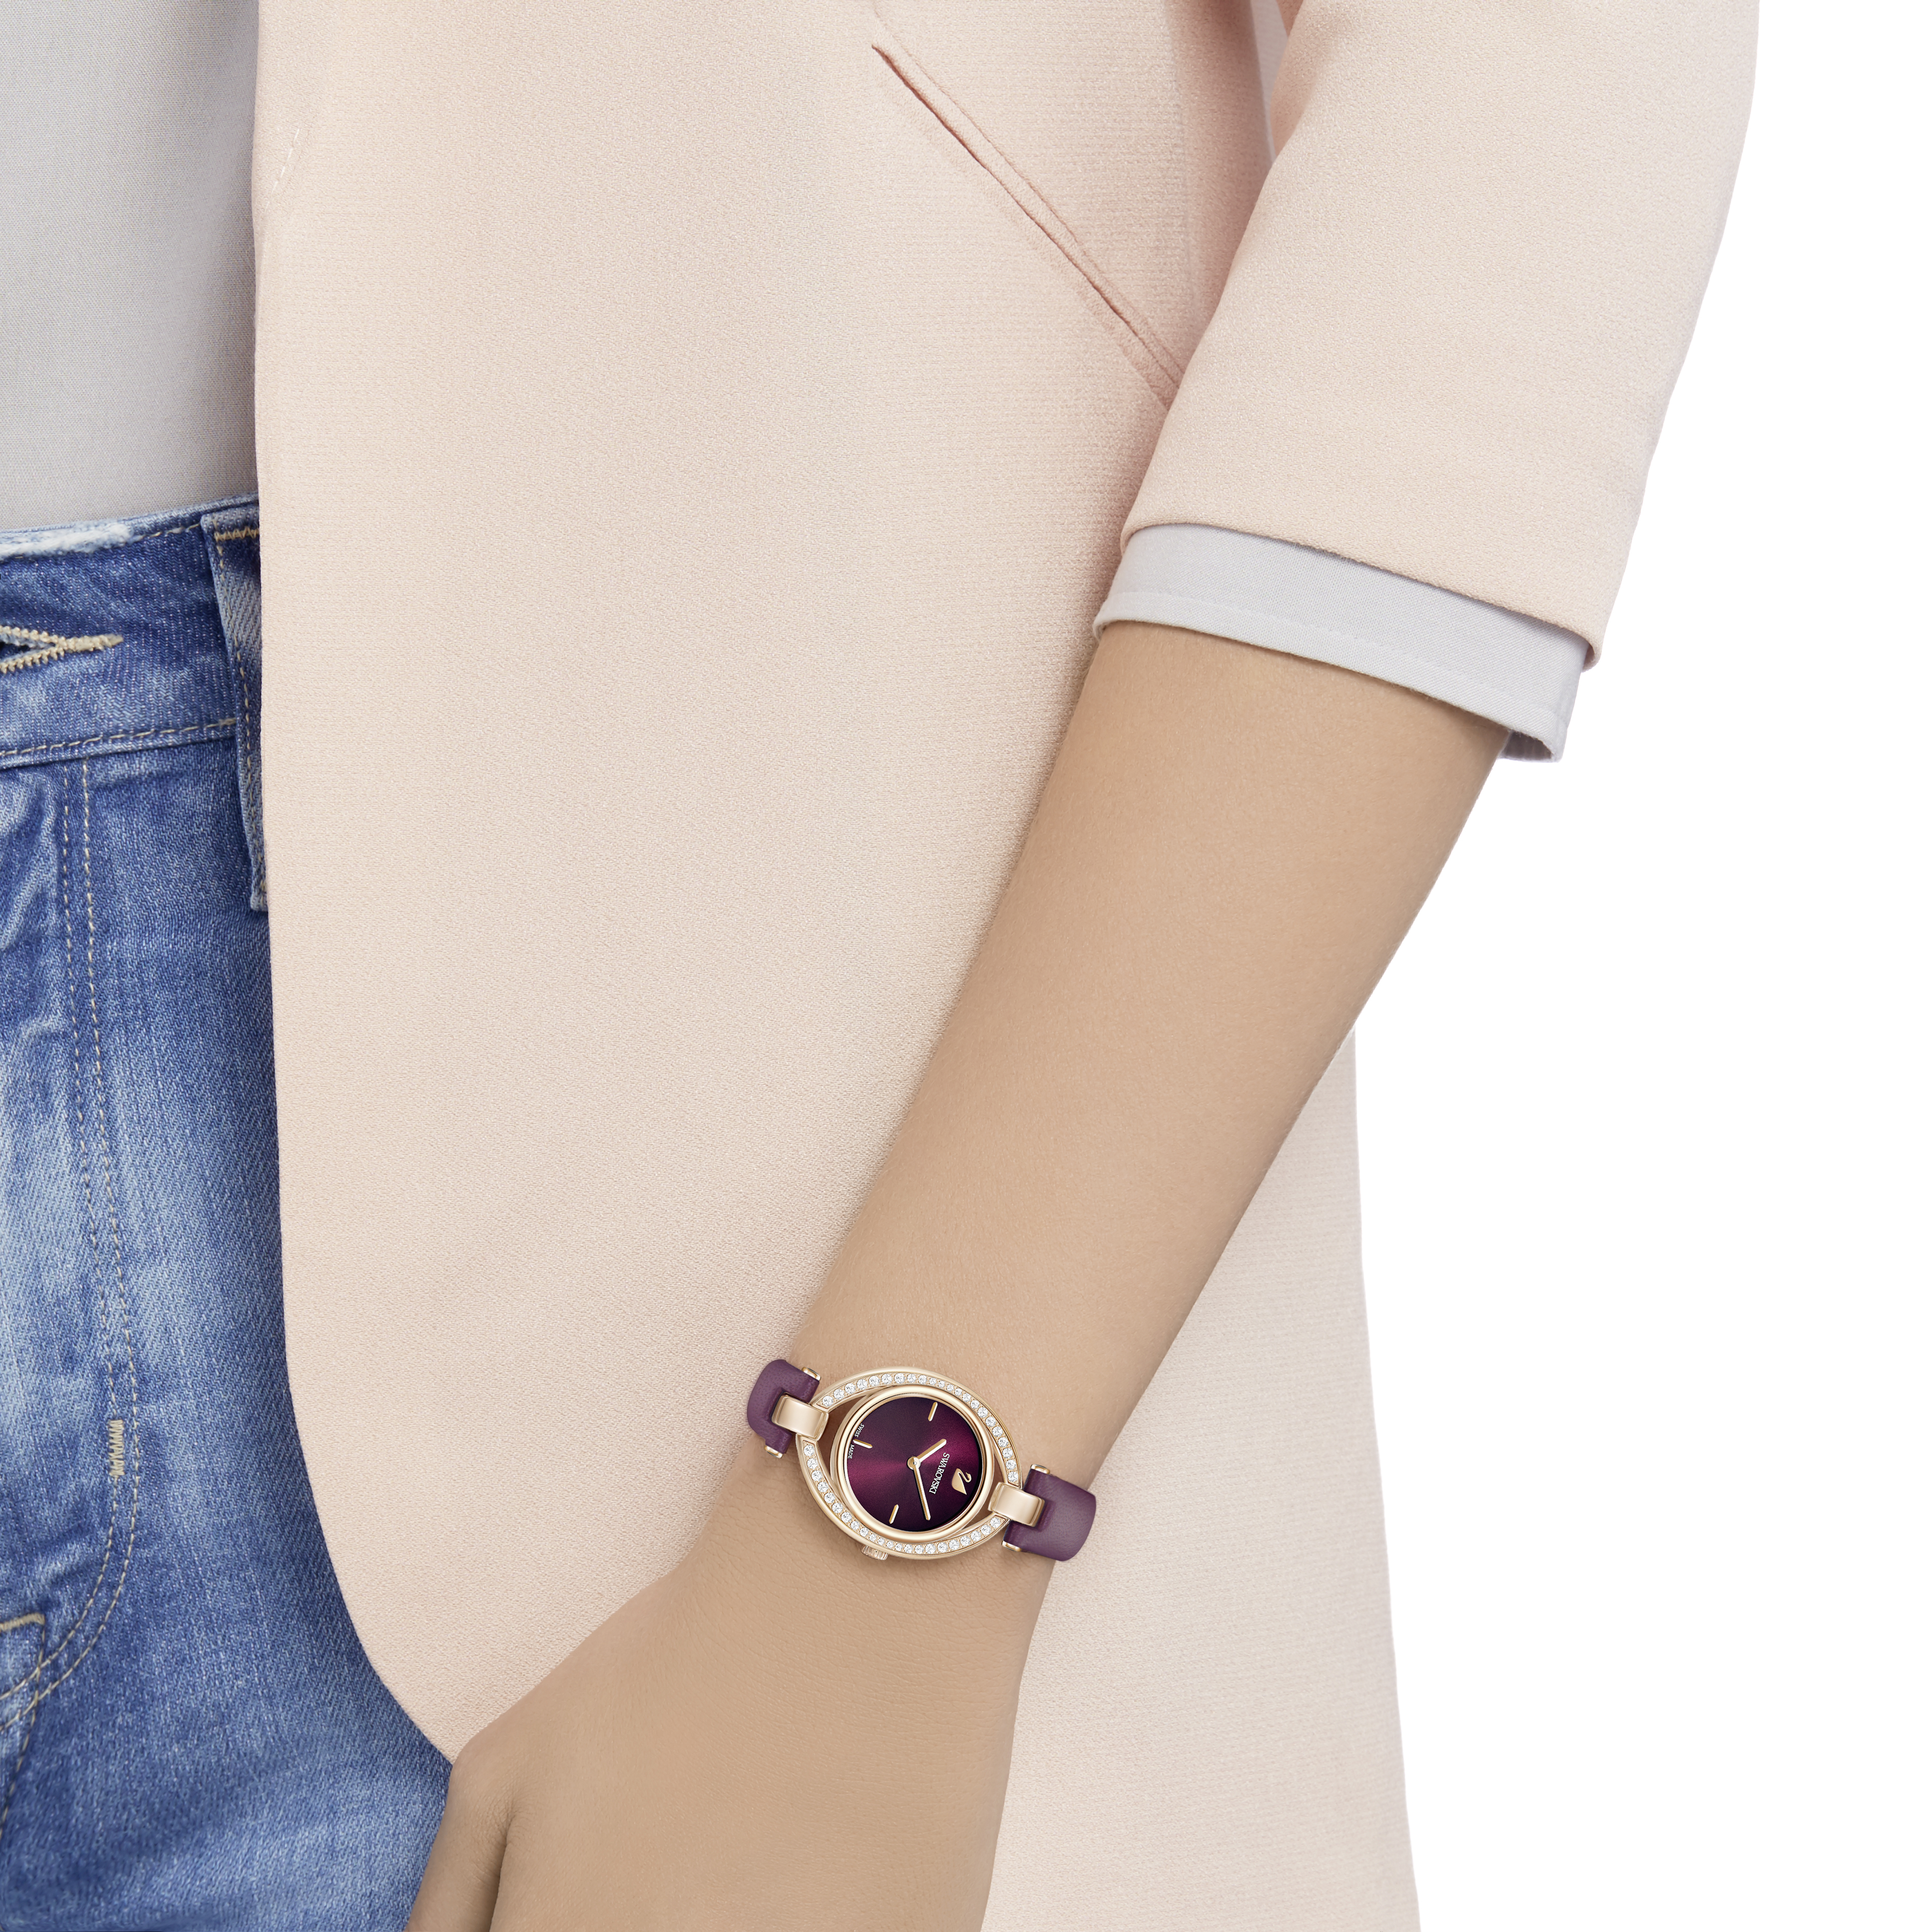 Stella Watch, Leather Strap, Dark Red, Rose Gold Tone